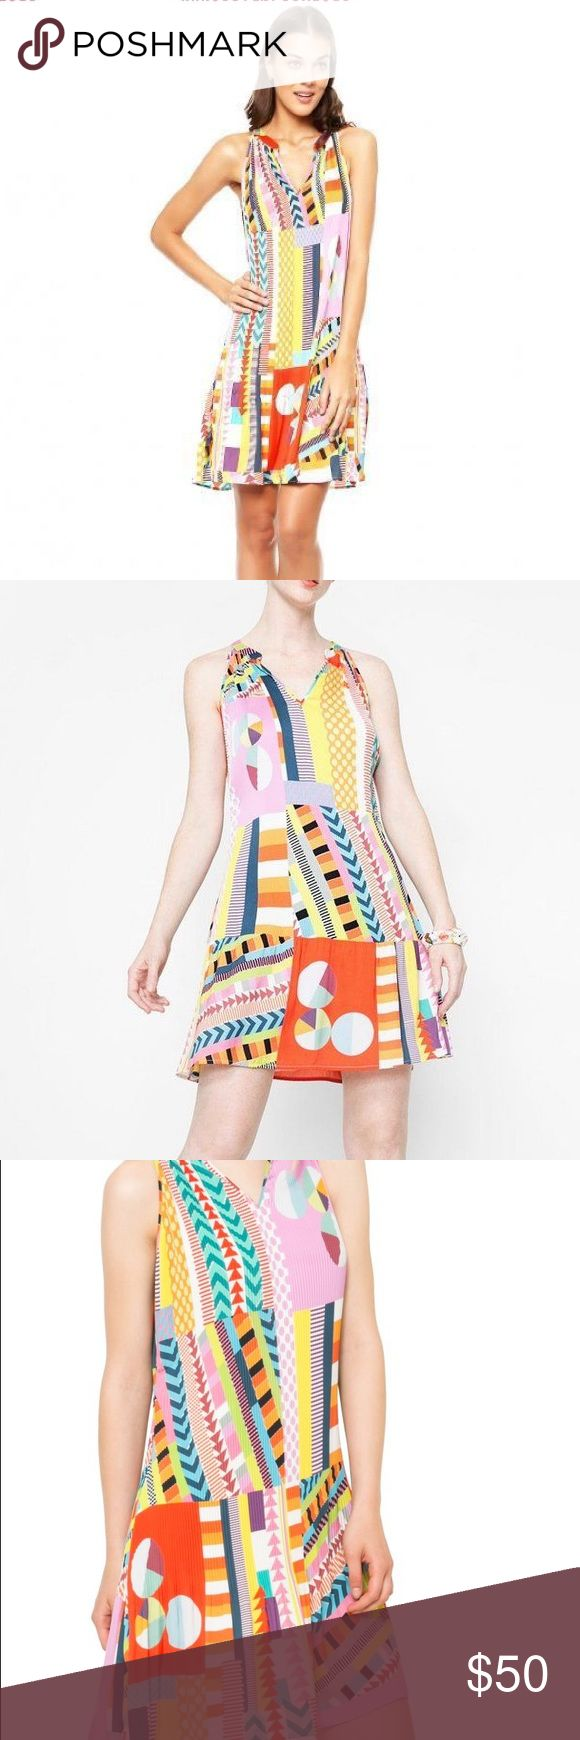 NWT desigual multi color dress Desigual - New with tags - multicolor pleated dress. 100% polyester Size 38/medium  No trades. Offers welcome Desigual Dresses